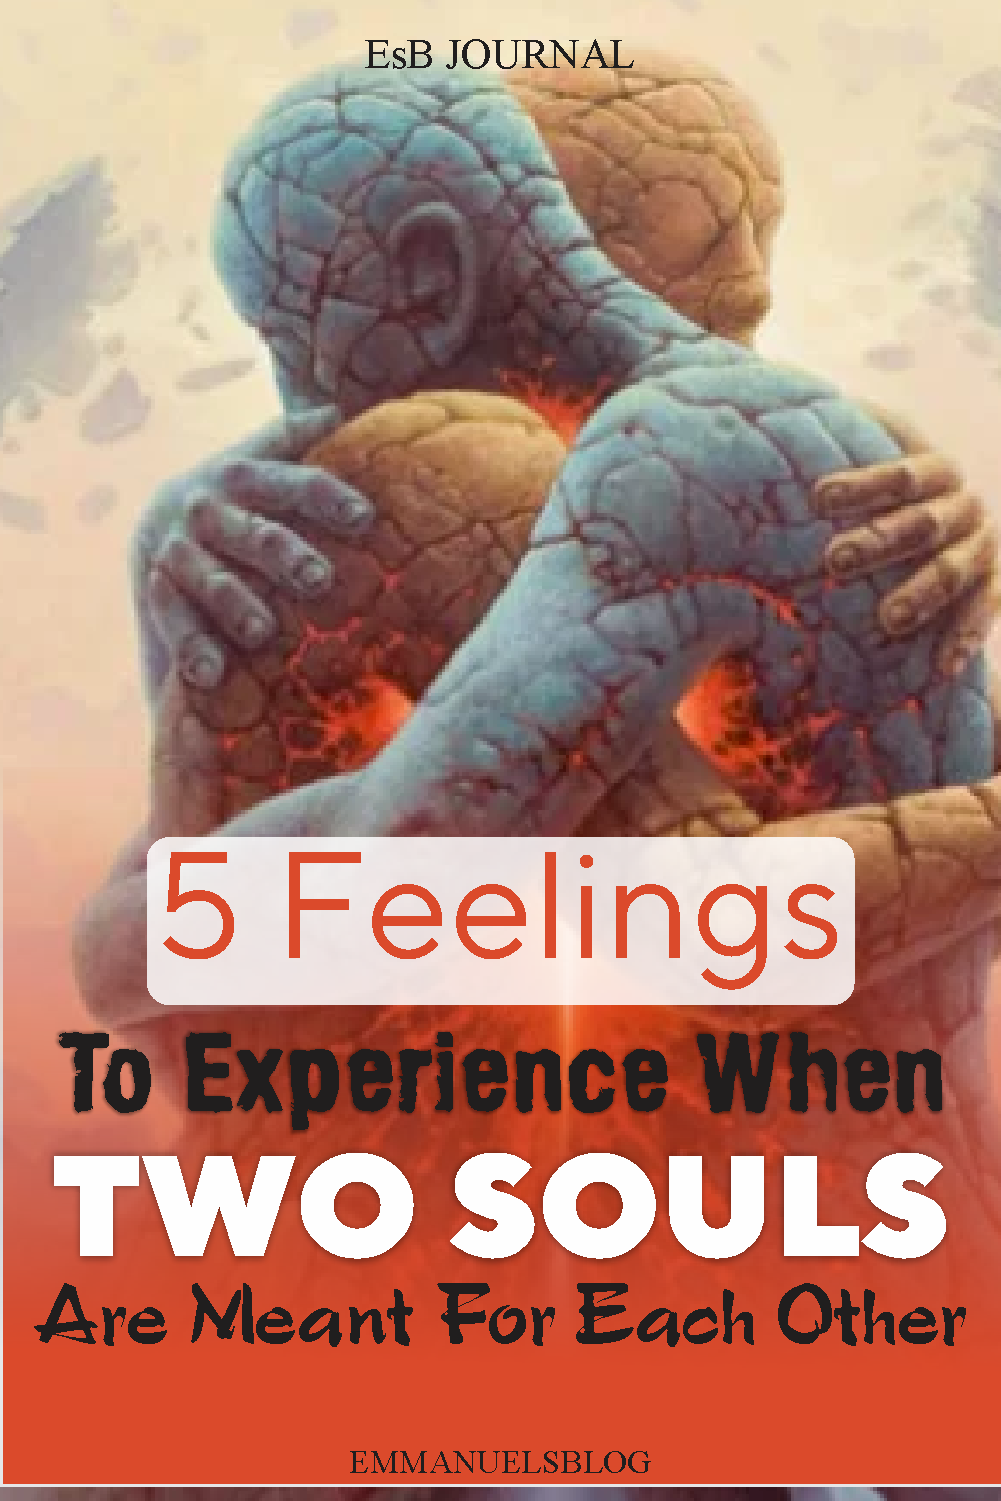 5 Feelings To Experience When Two Souls Are Meant For Each Other